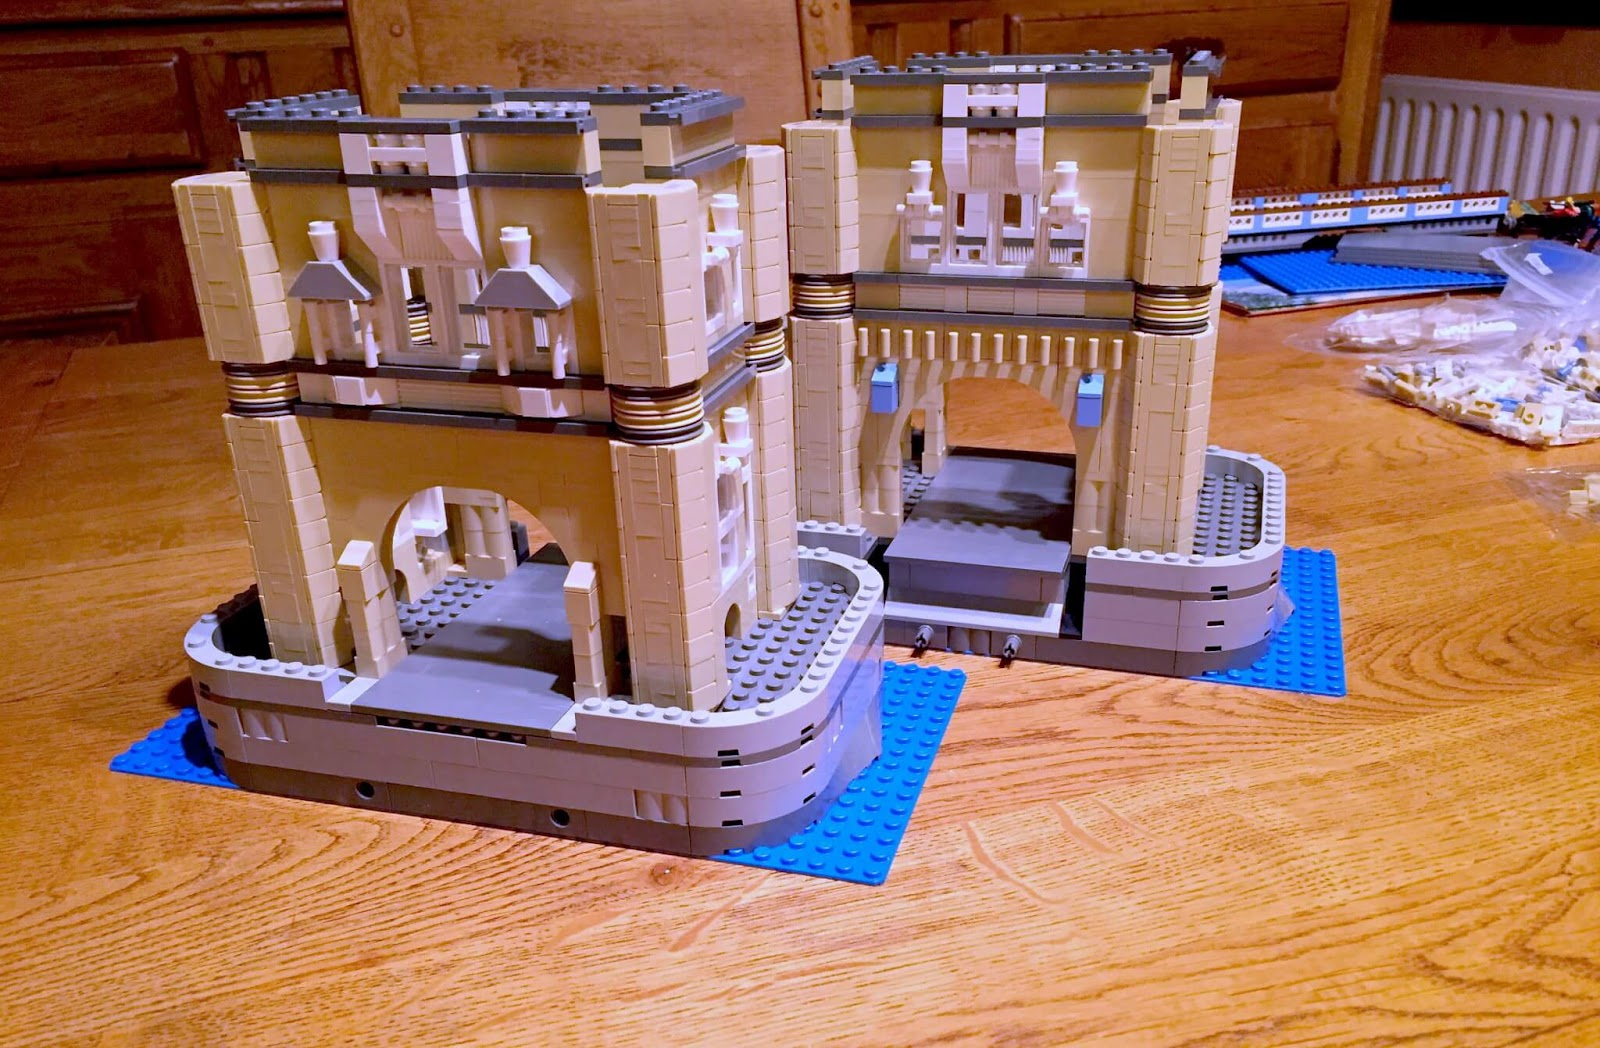 Building Lego Tower Bridge 10214 | Building the towers in steps.